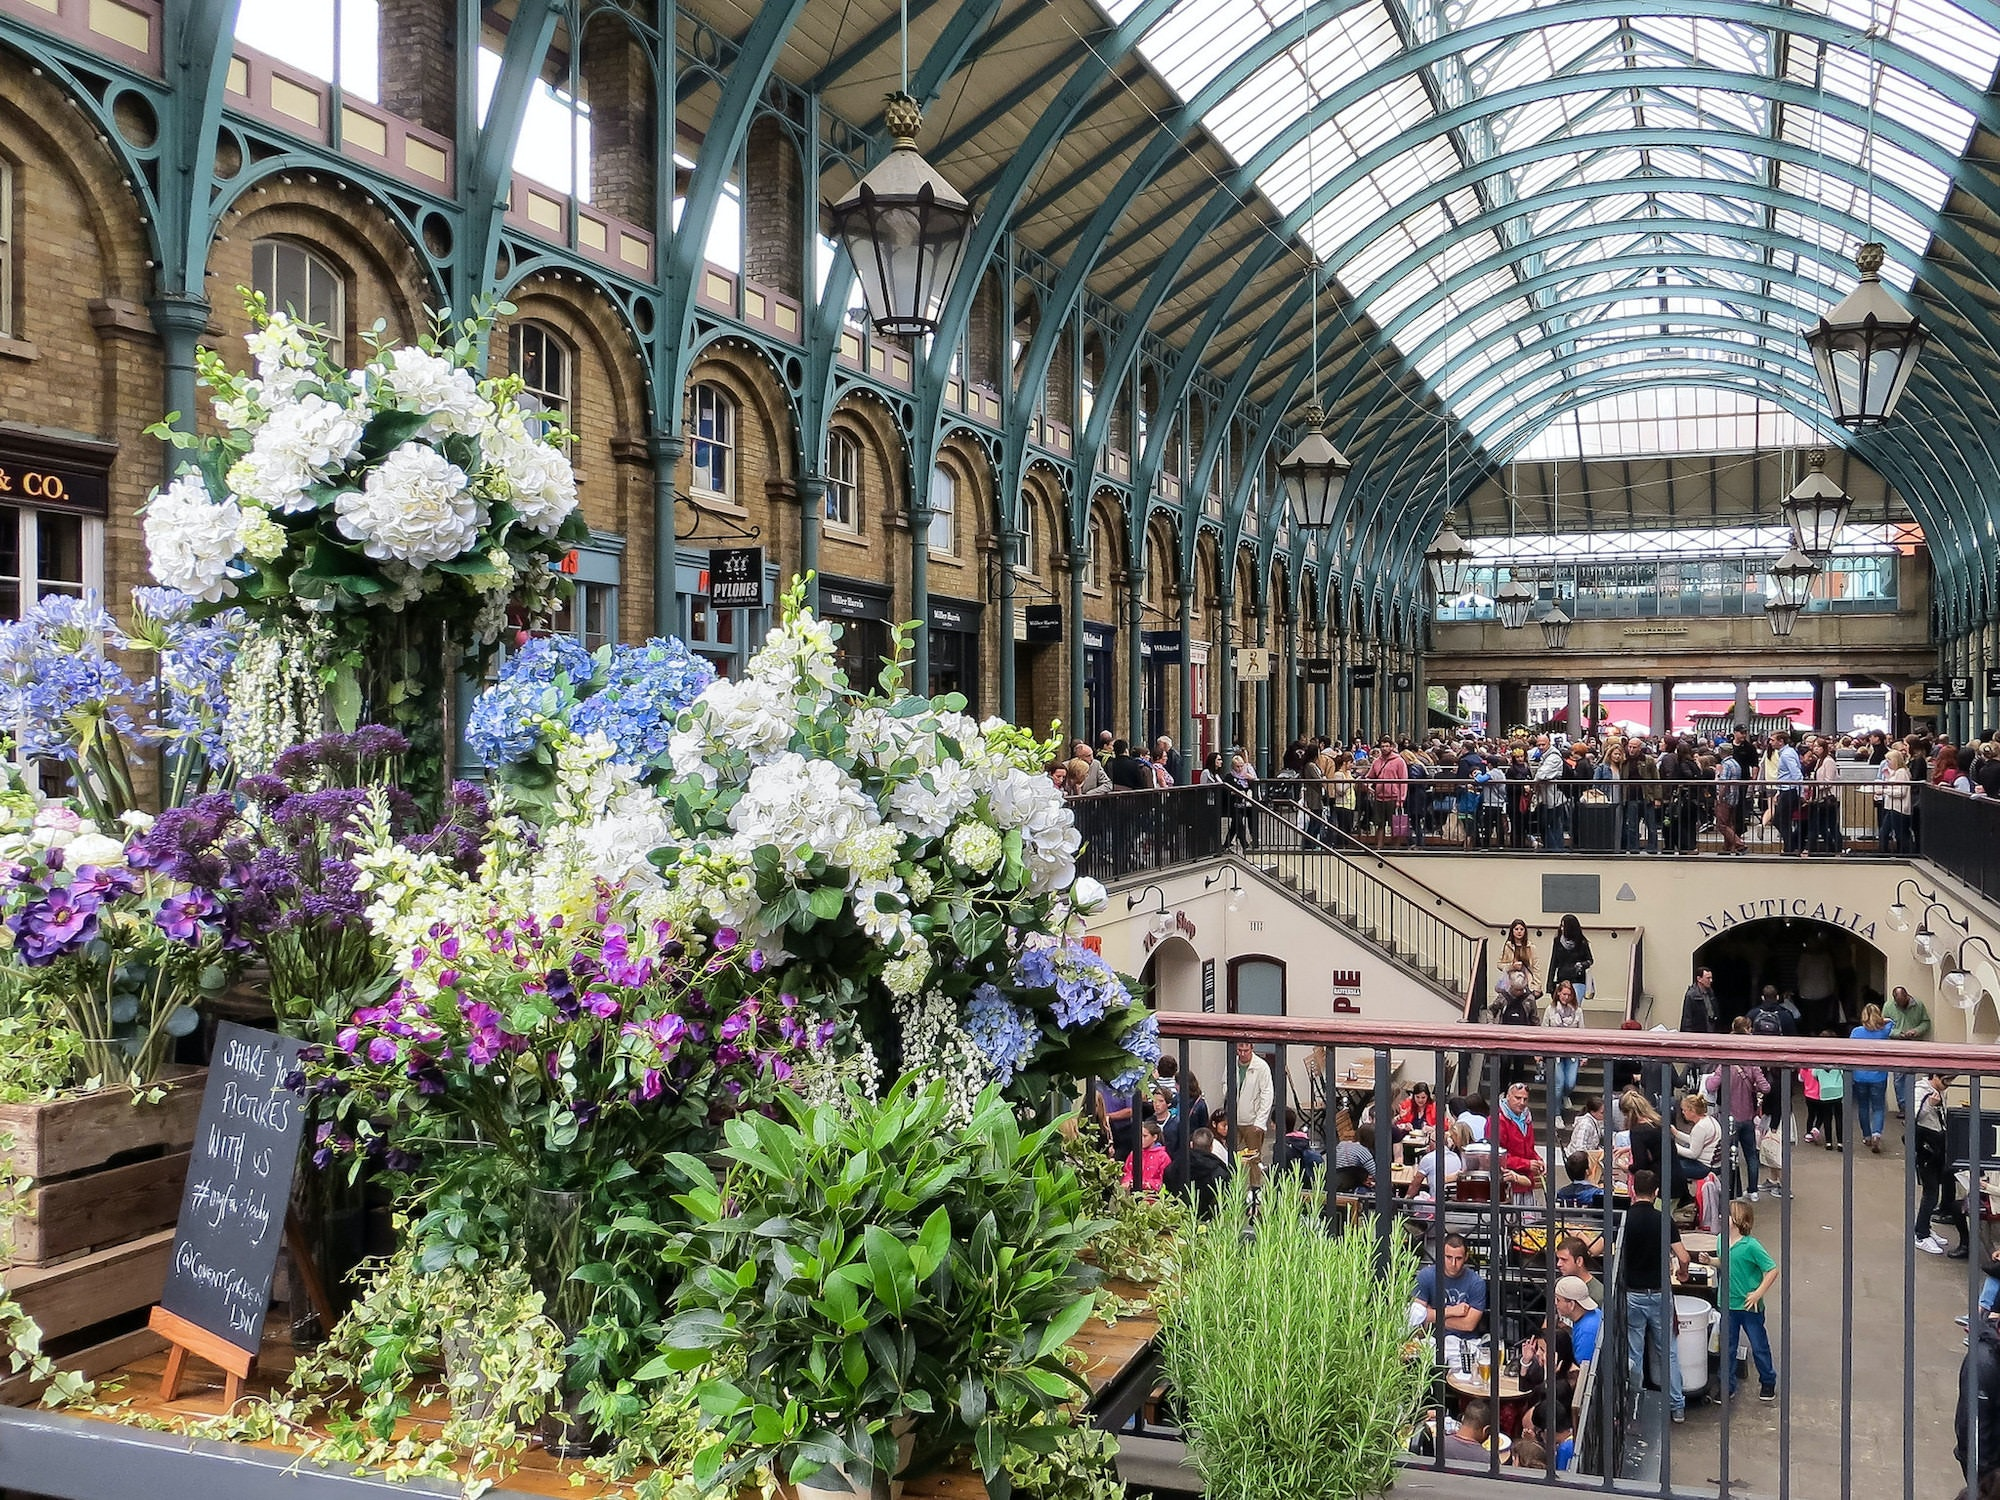 Covent Garden is known for its flagship beauty stores, this is the best place for some relaxed shopping before heading to one of the local eateries.